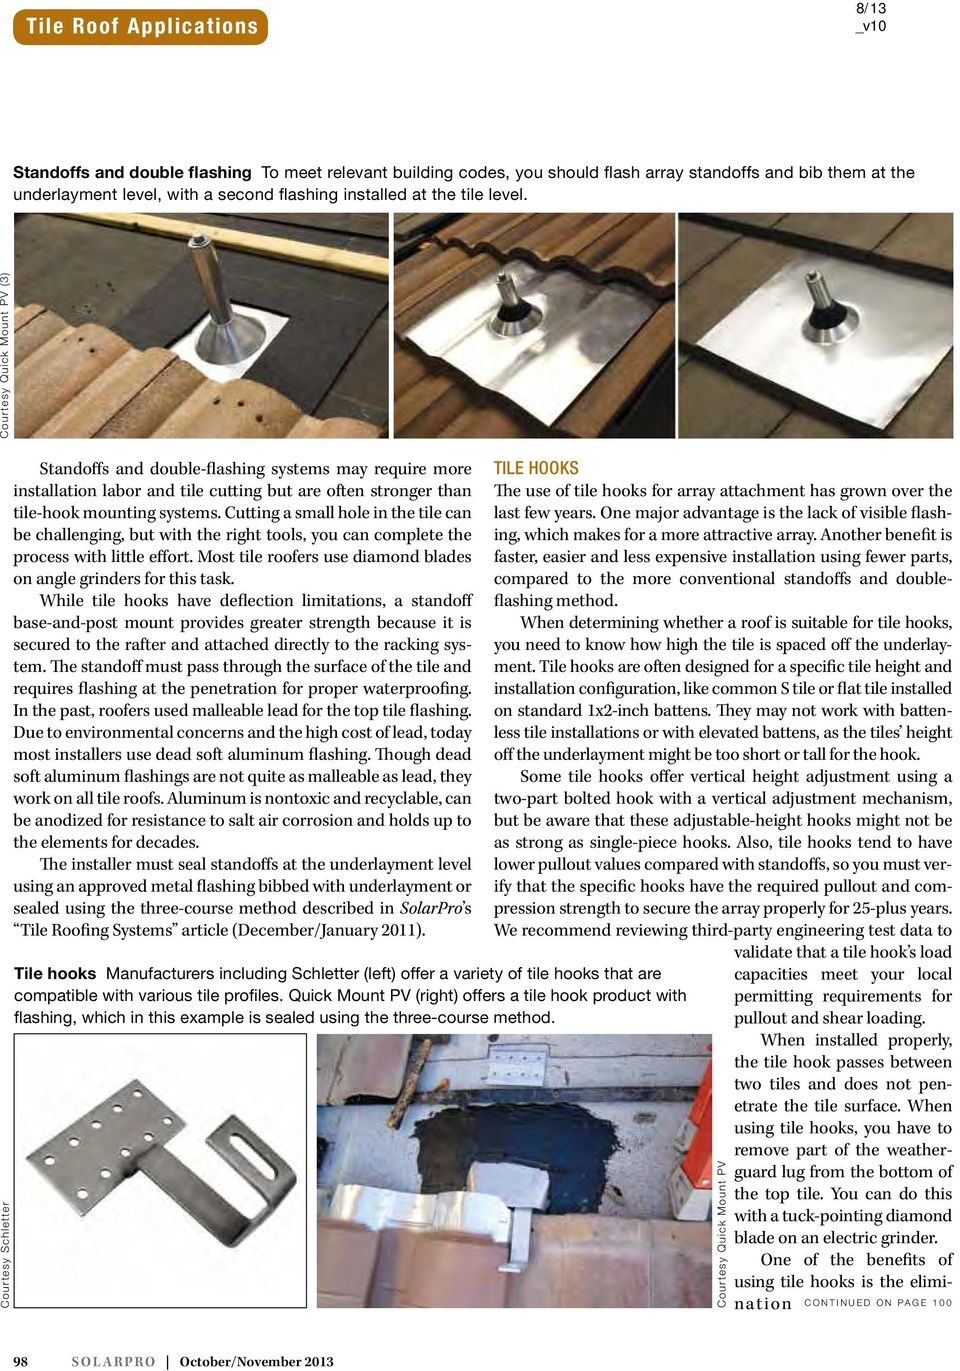 Tile Roof Applications Roofing Systems and Array Mounting